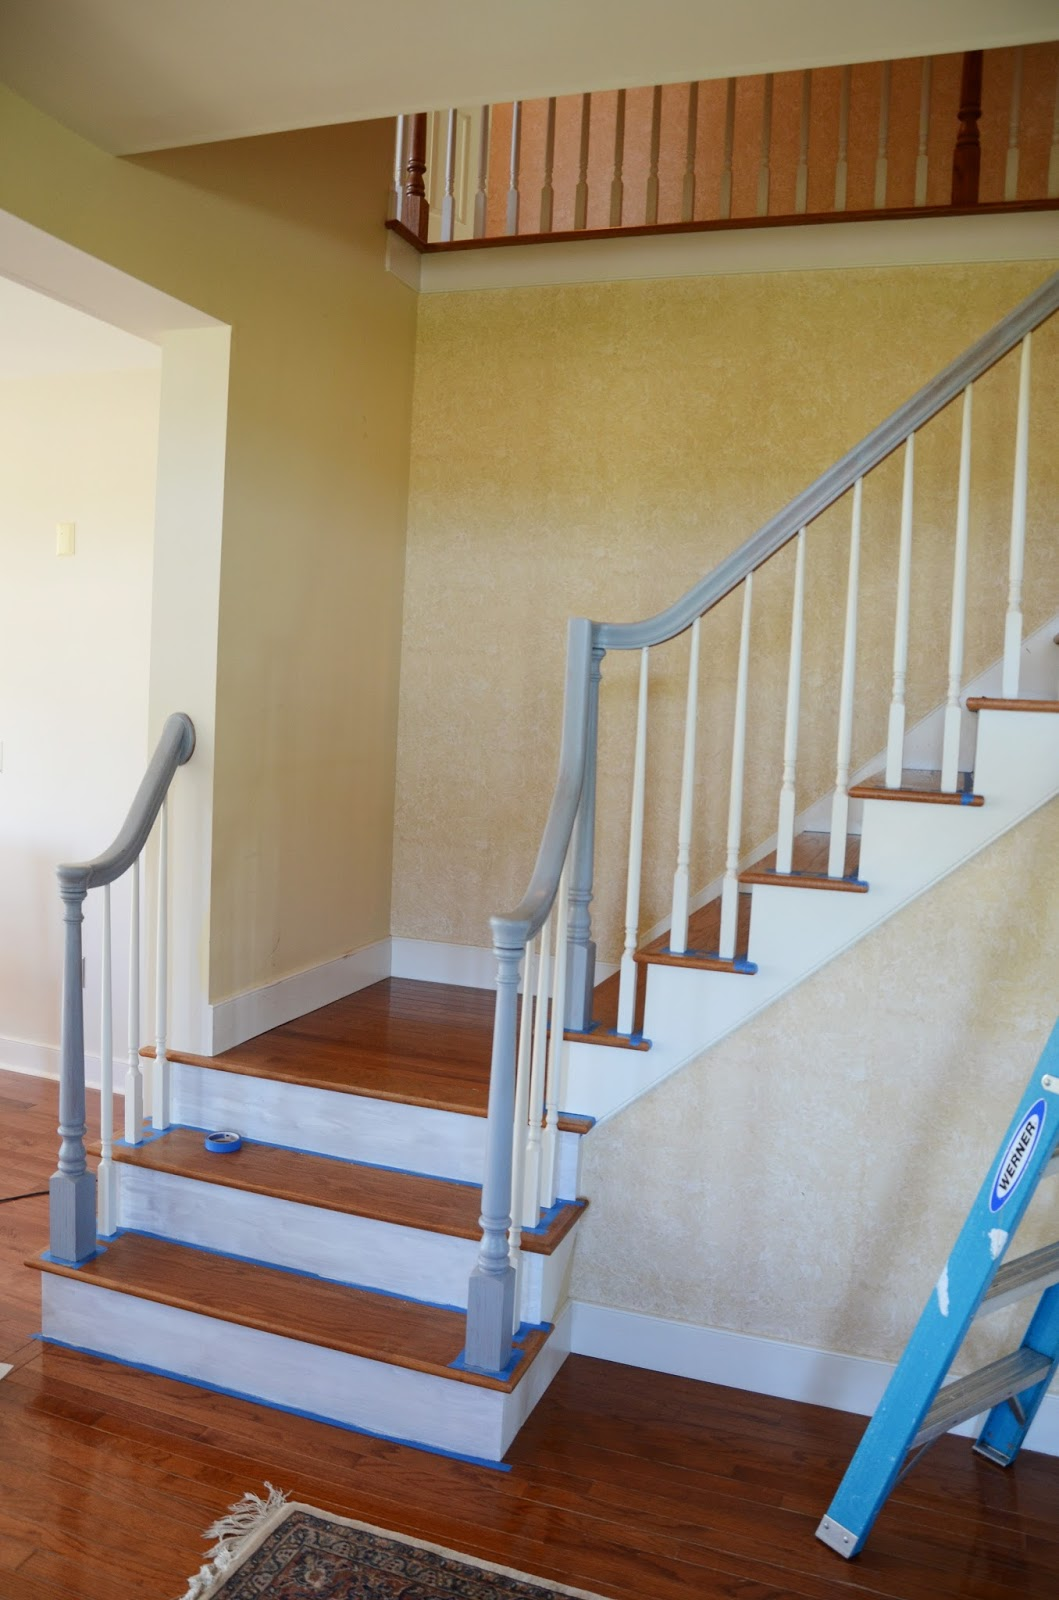 Then We Painted The Risers With 3 Coats Of High Gloss